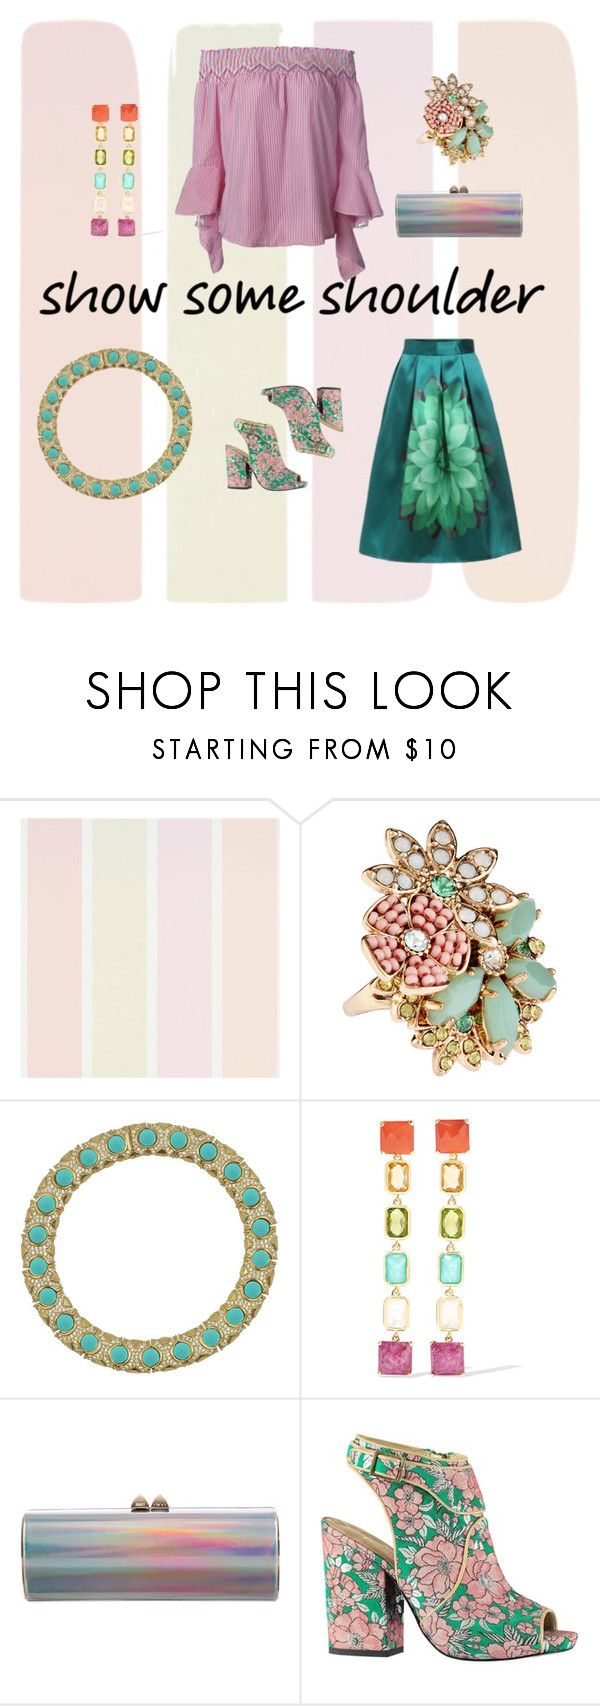 """#showsomeshoulder"" by things-fo4-your-head ❤ liked on Polyvore featuring Accessorize, Ciner, Ippolita, Jimmy Choo and showsomeshoulder"